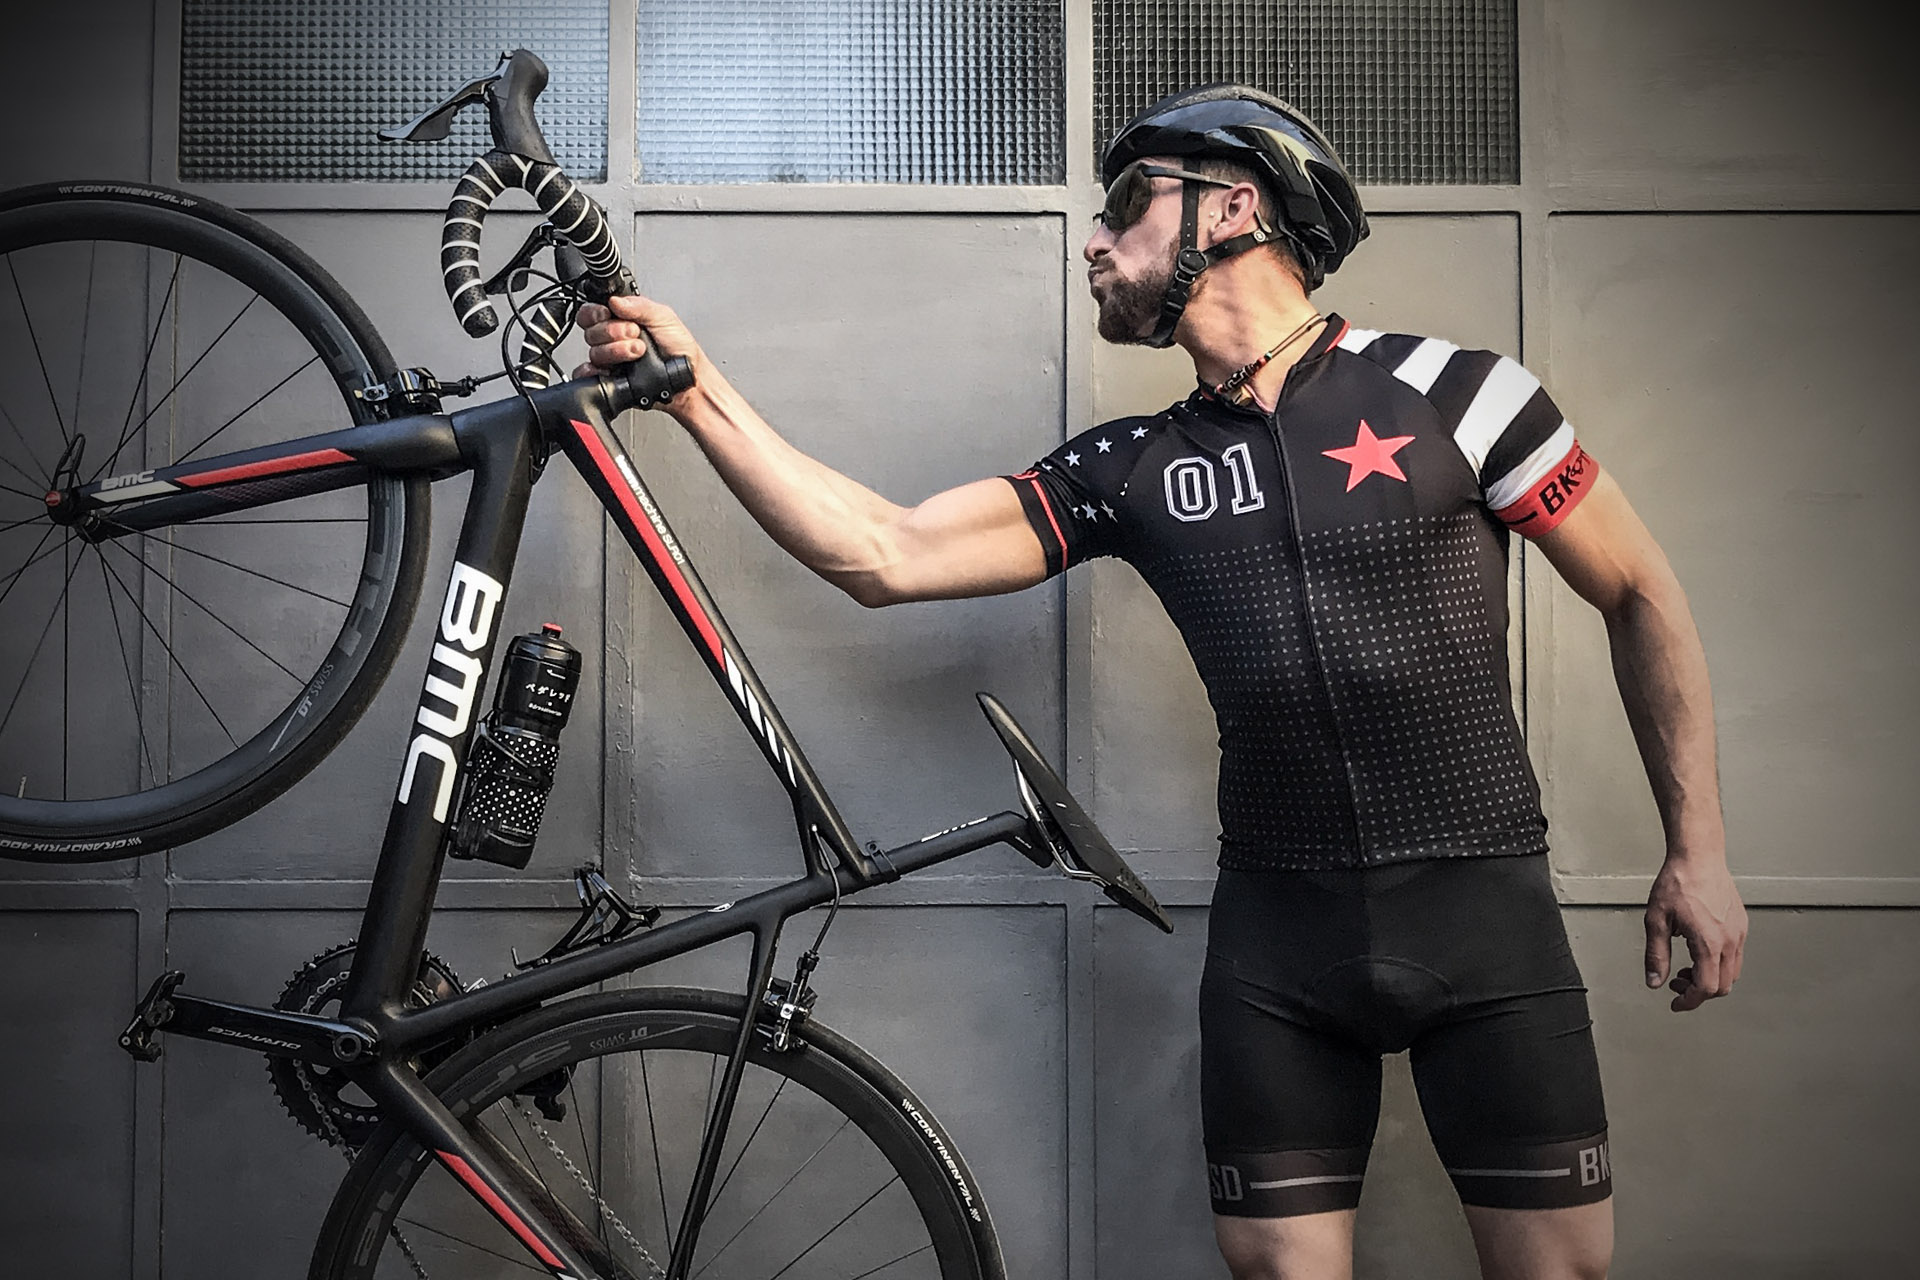 Home Page – Bike inside cycling wear